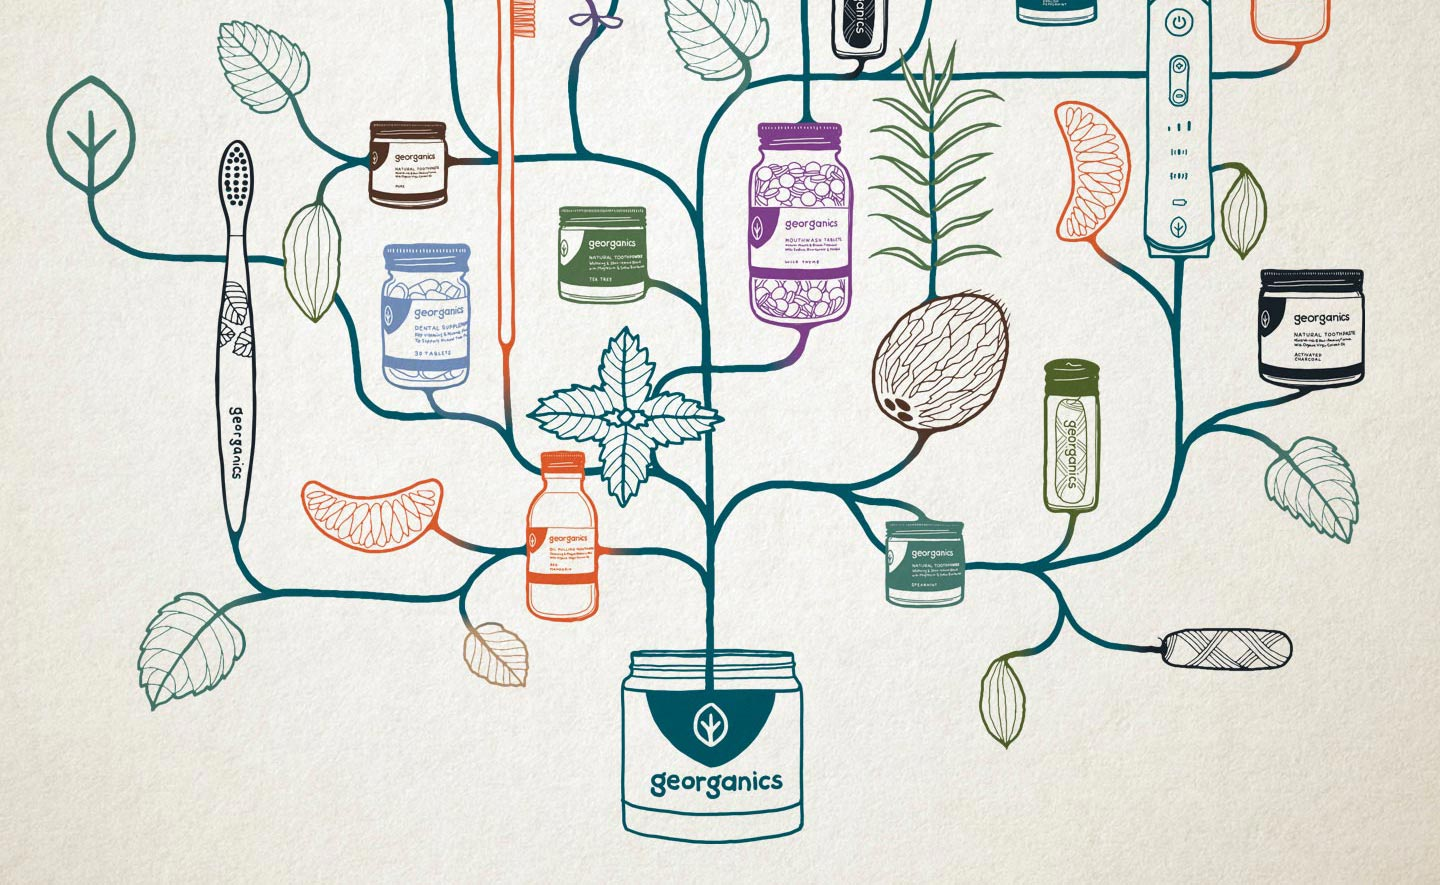 Georganics zero waste packaging graphic design product tree illustration Toop Studio